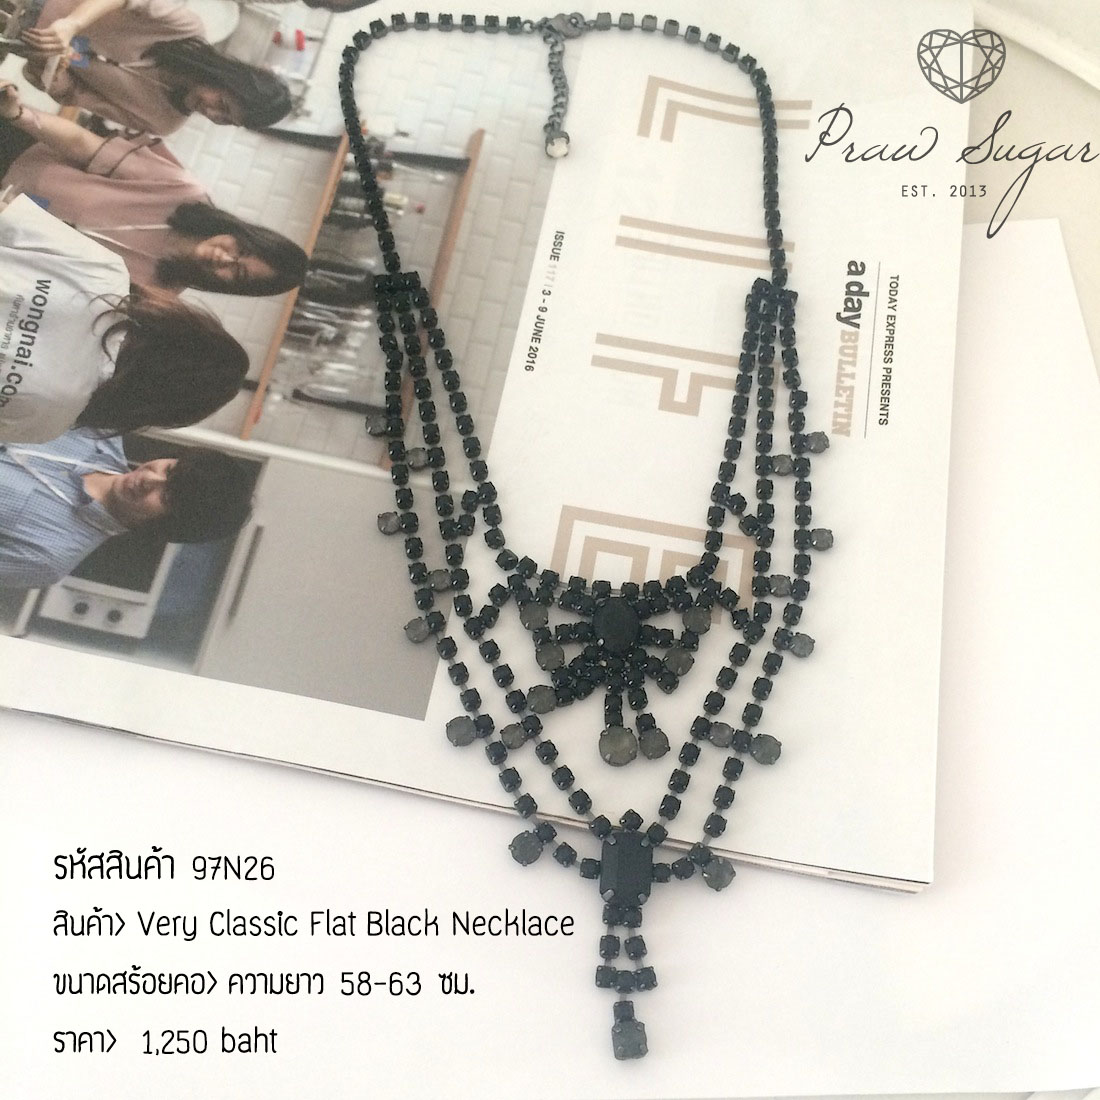 Very Classic Flat Black Necklace